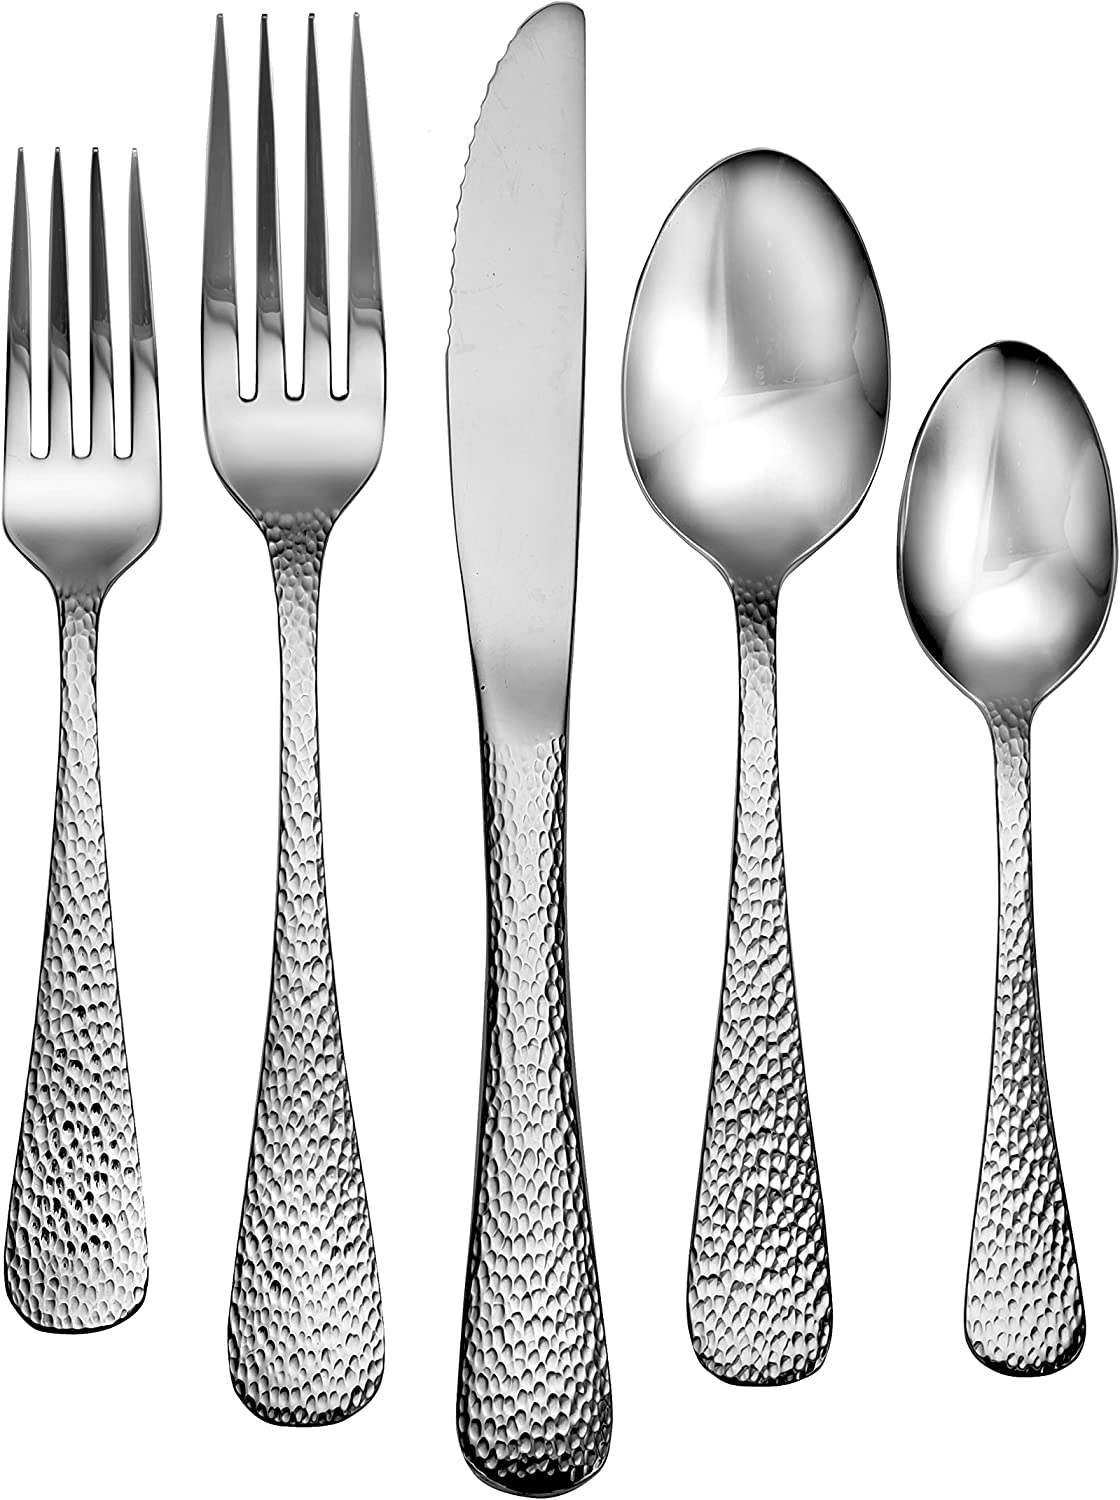 Liberty Tabletop Providence 20 Piece Set 4 2021 model Cheap mail order sales for service Flatware